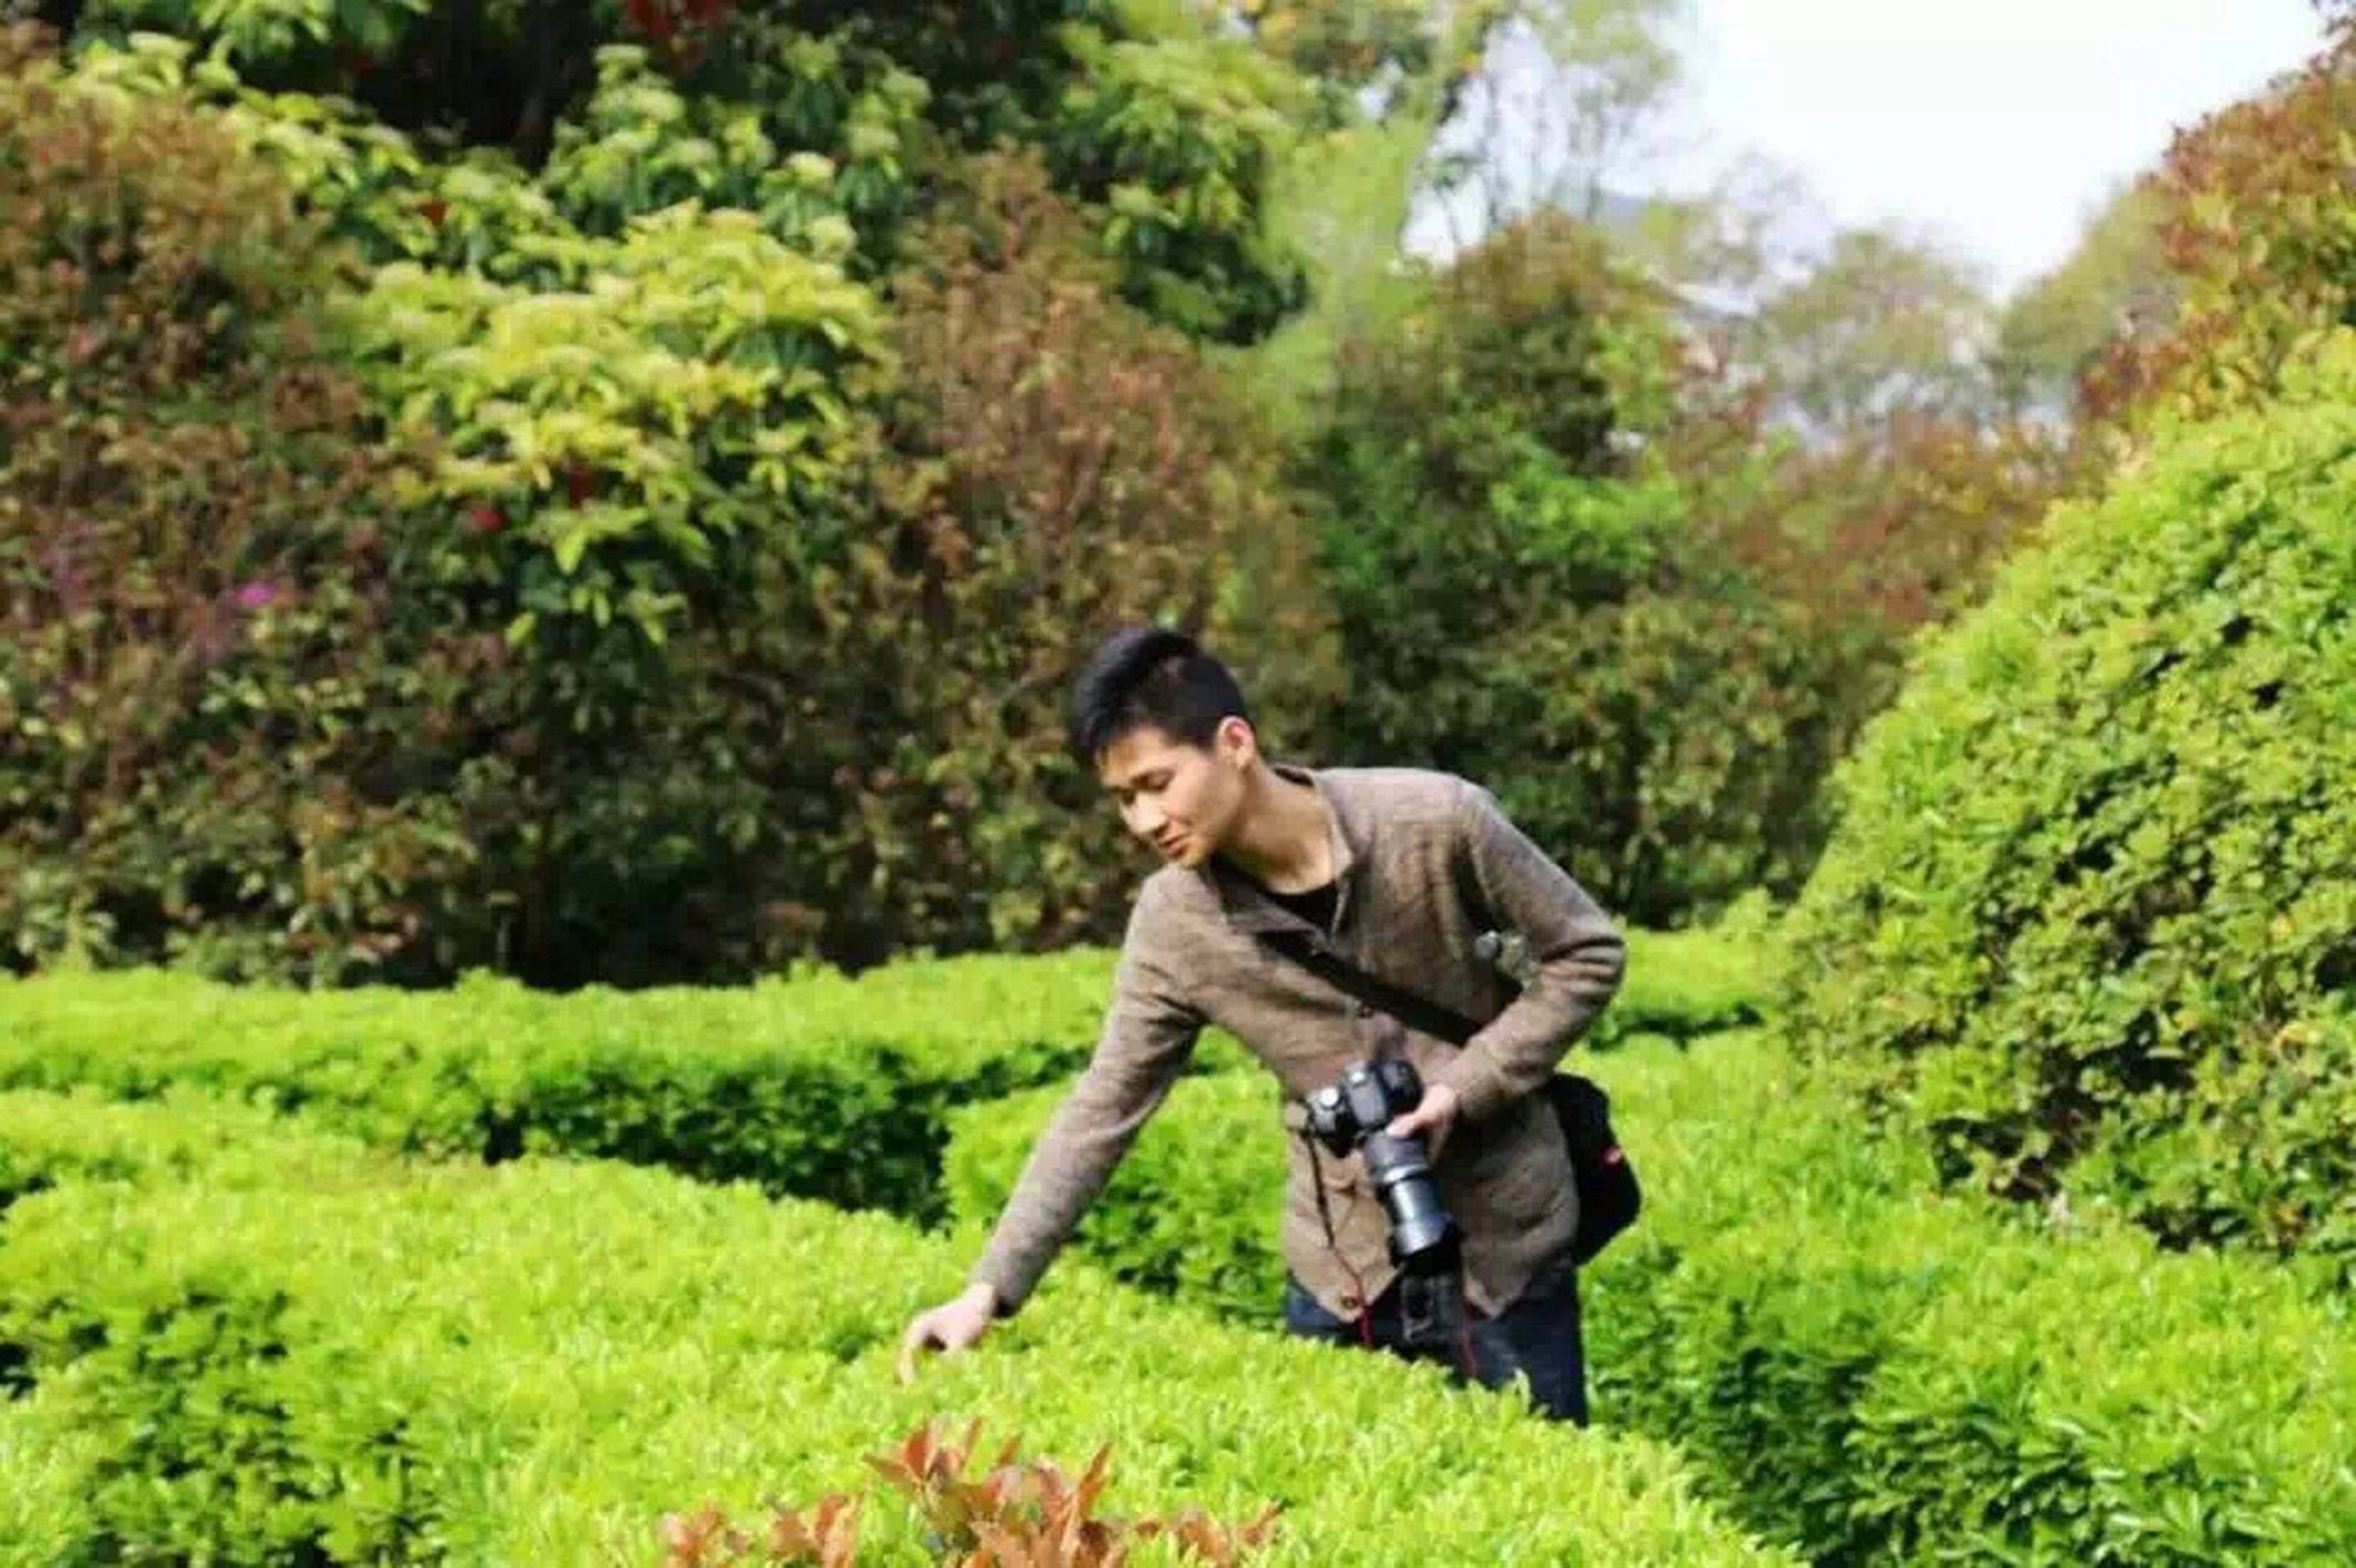 tree, green color, lifestyles, leisure activity, young adult, casual clothing, growth, young men, full length, person, plant, forest, sitting, nature, grass, portrait, front view, looking at camera